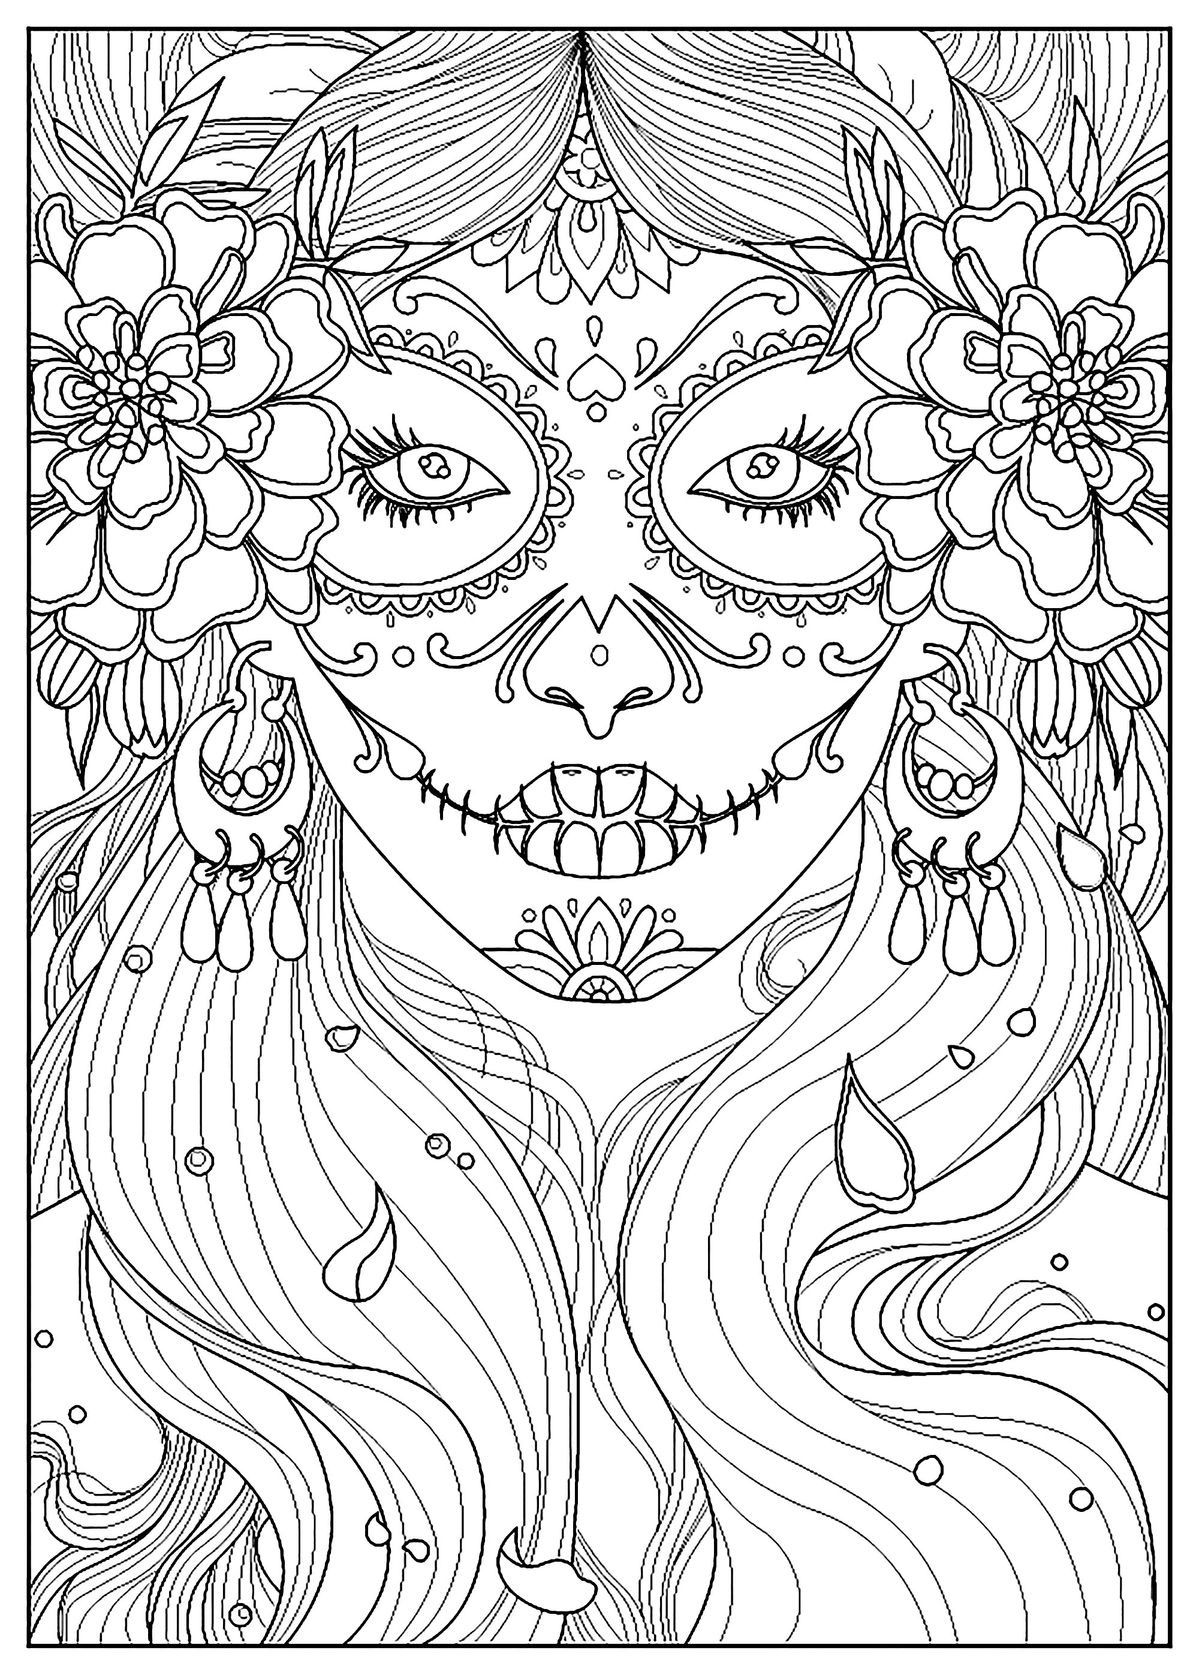 Pin by Mini on ColorSheets | Free adult coloring pages ...